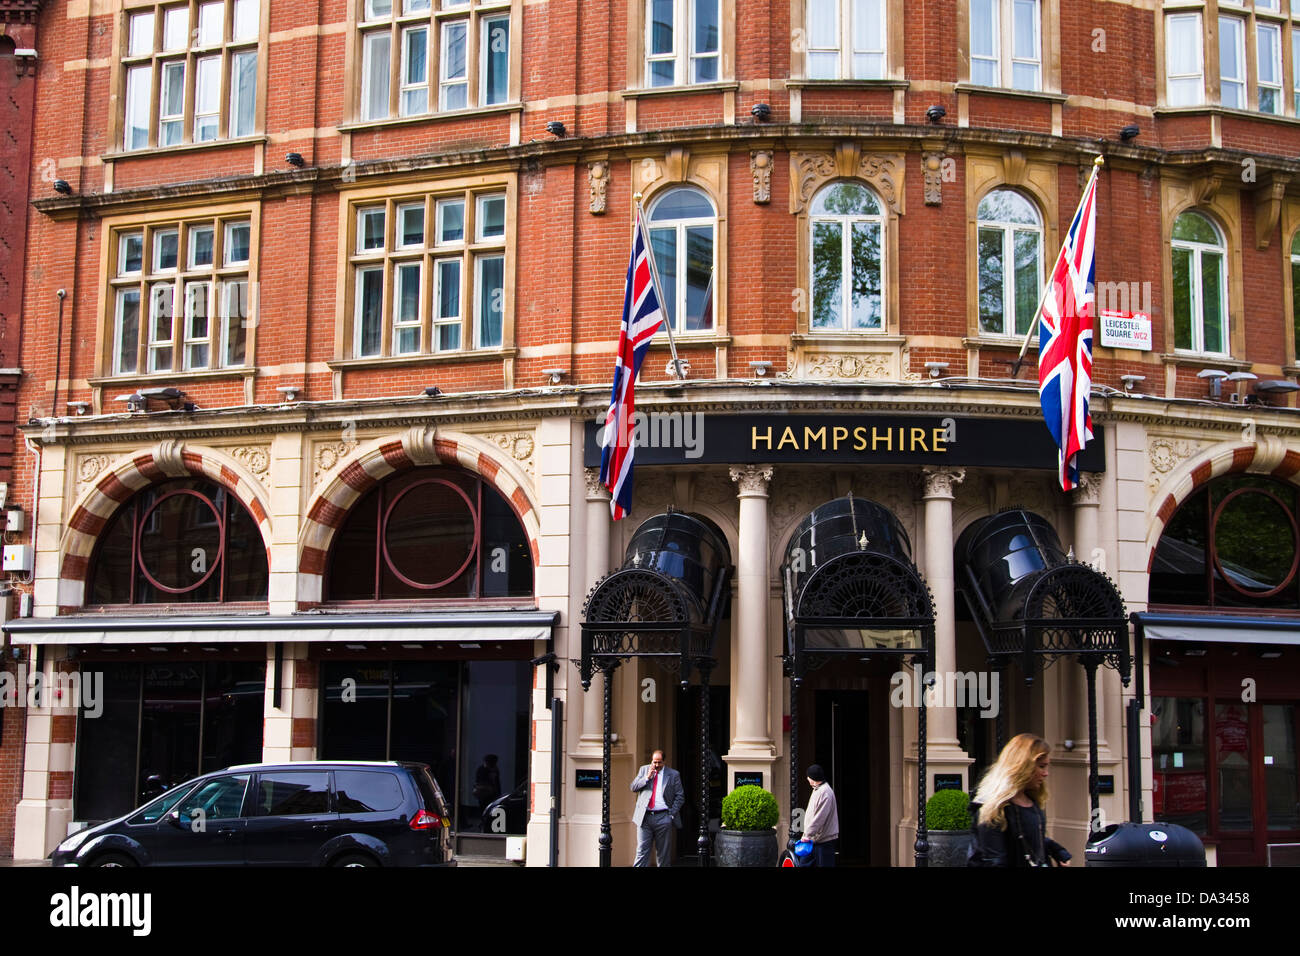 Hampshire hotel Leicester square-London - Stock Image